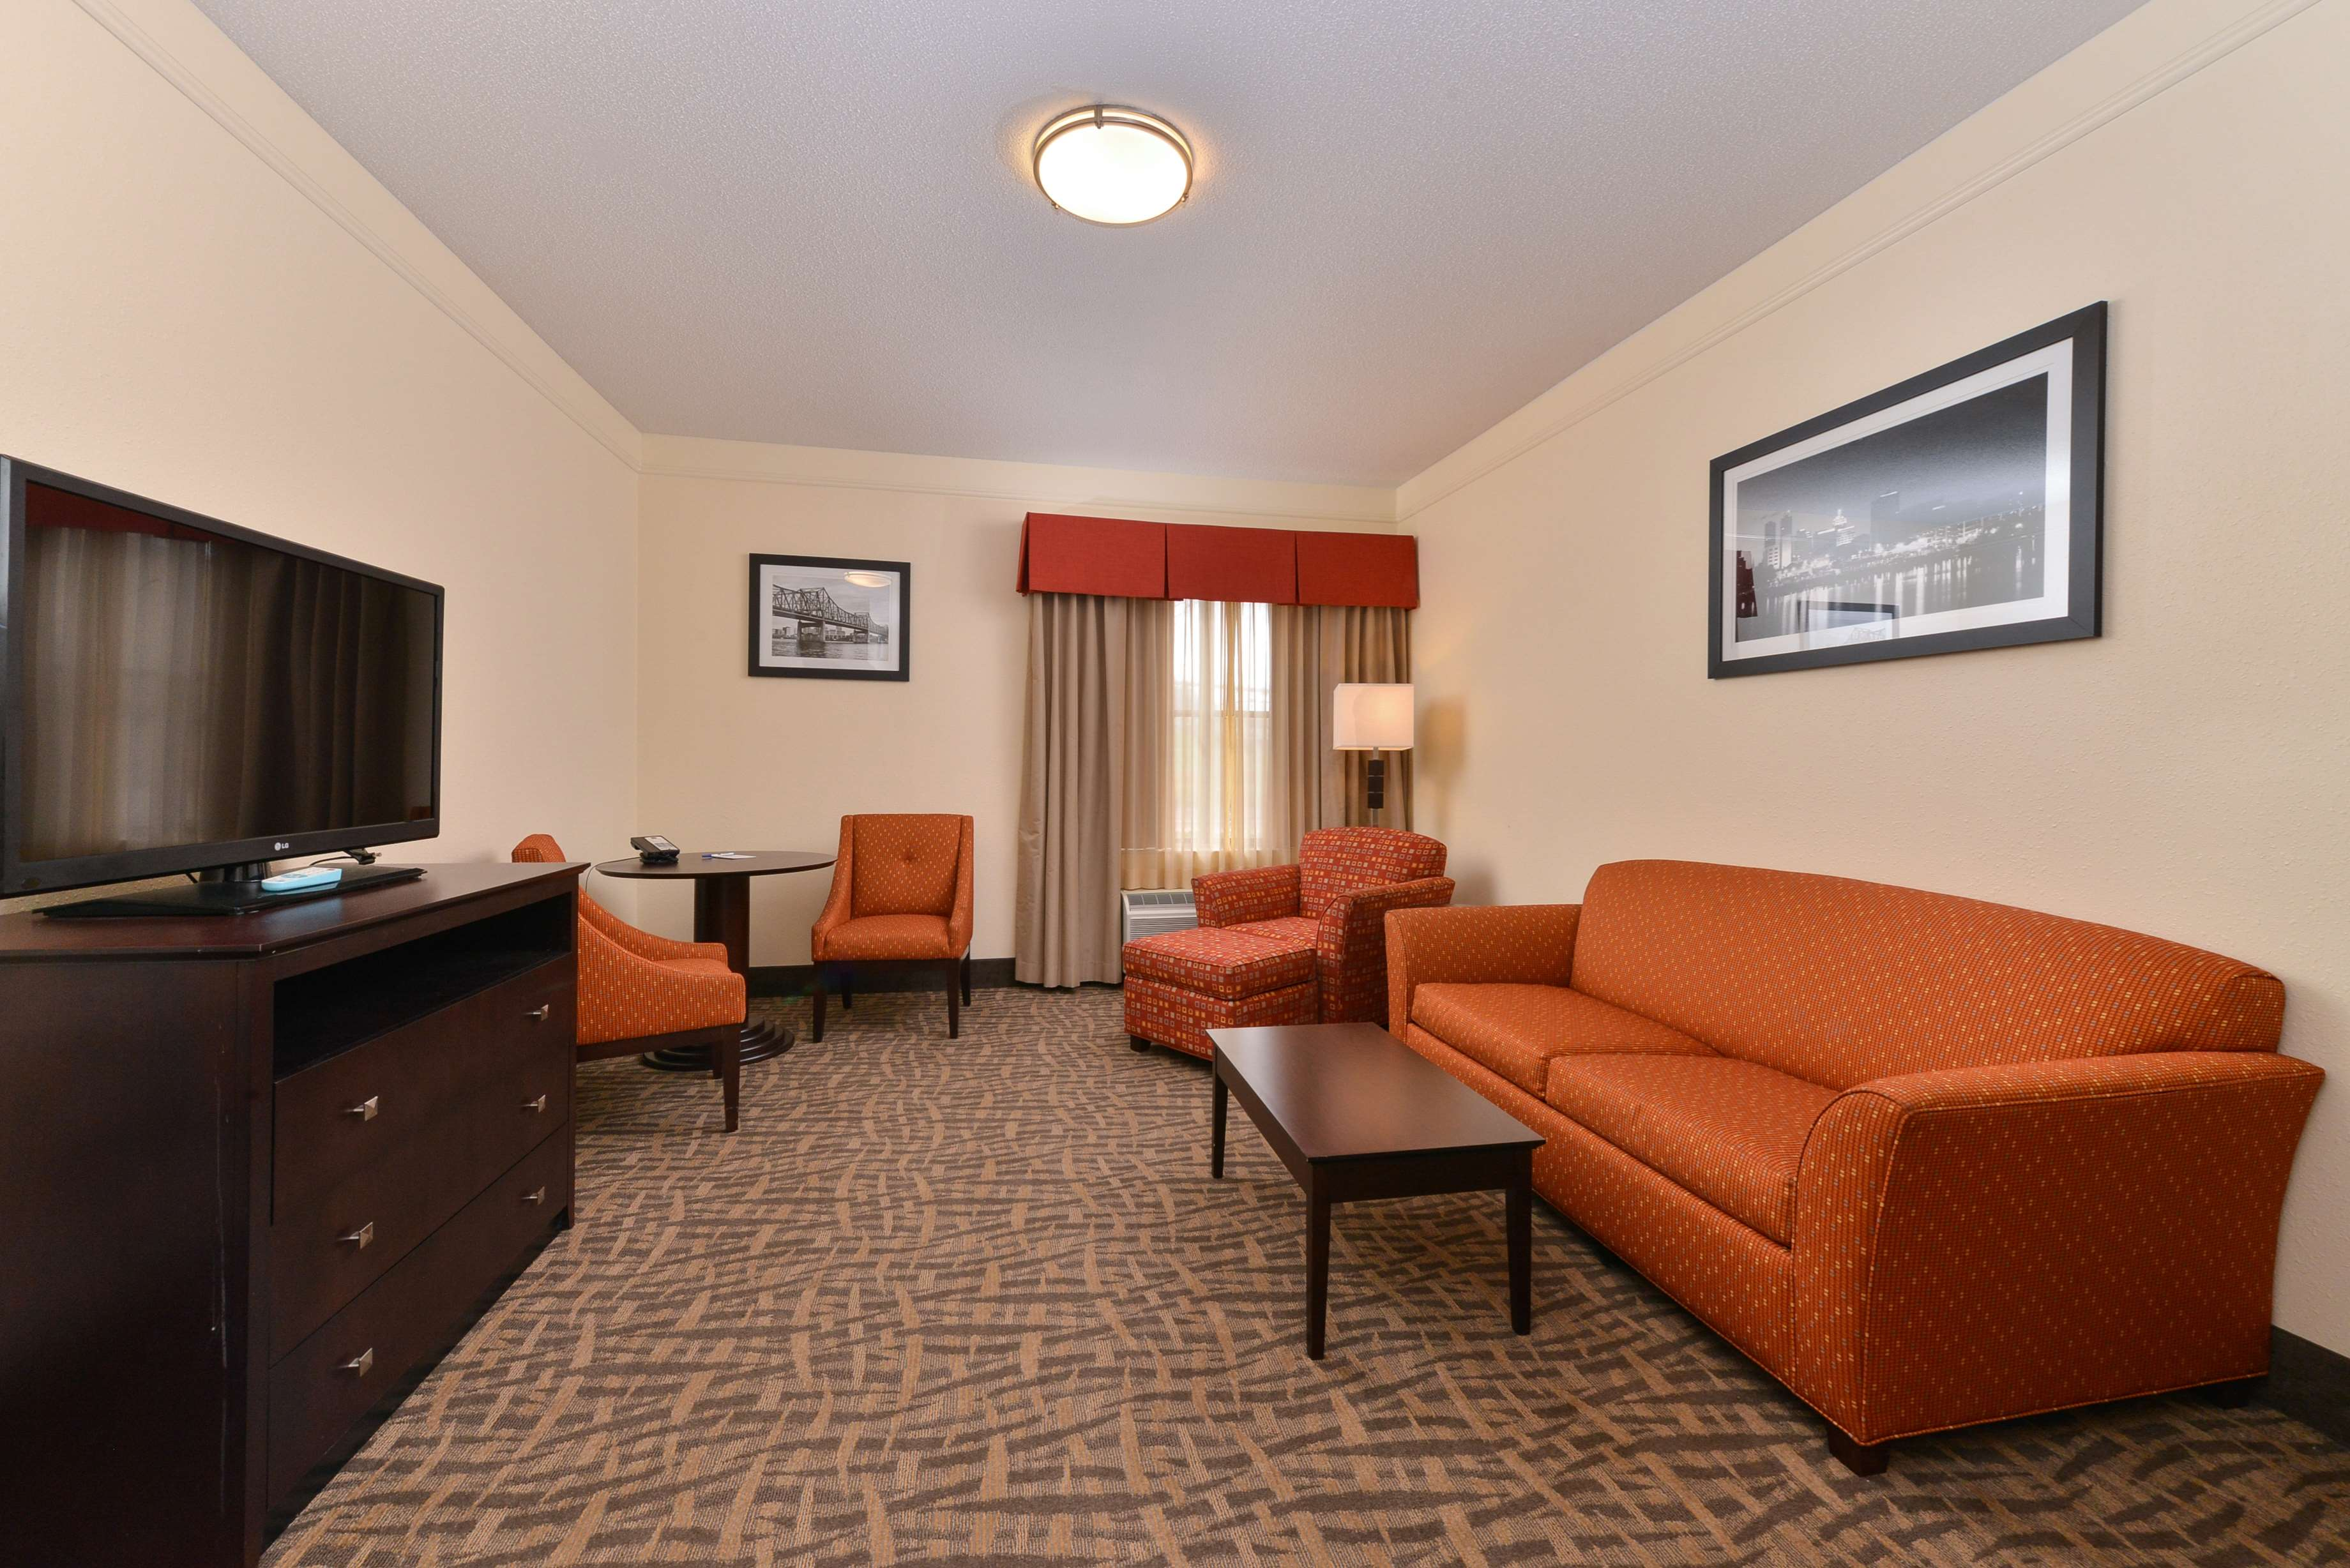 east peoria chat rooms Embassy suites by hilton e peoria riverfront conf center in east peoria on hotelscom and earn rewards nights  east peoria, guest room 6 .